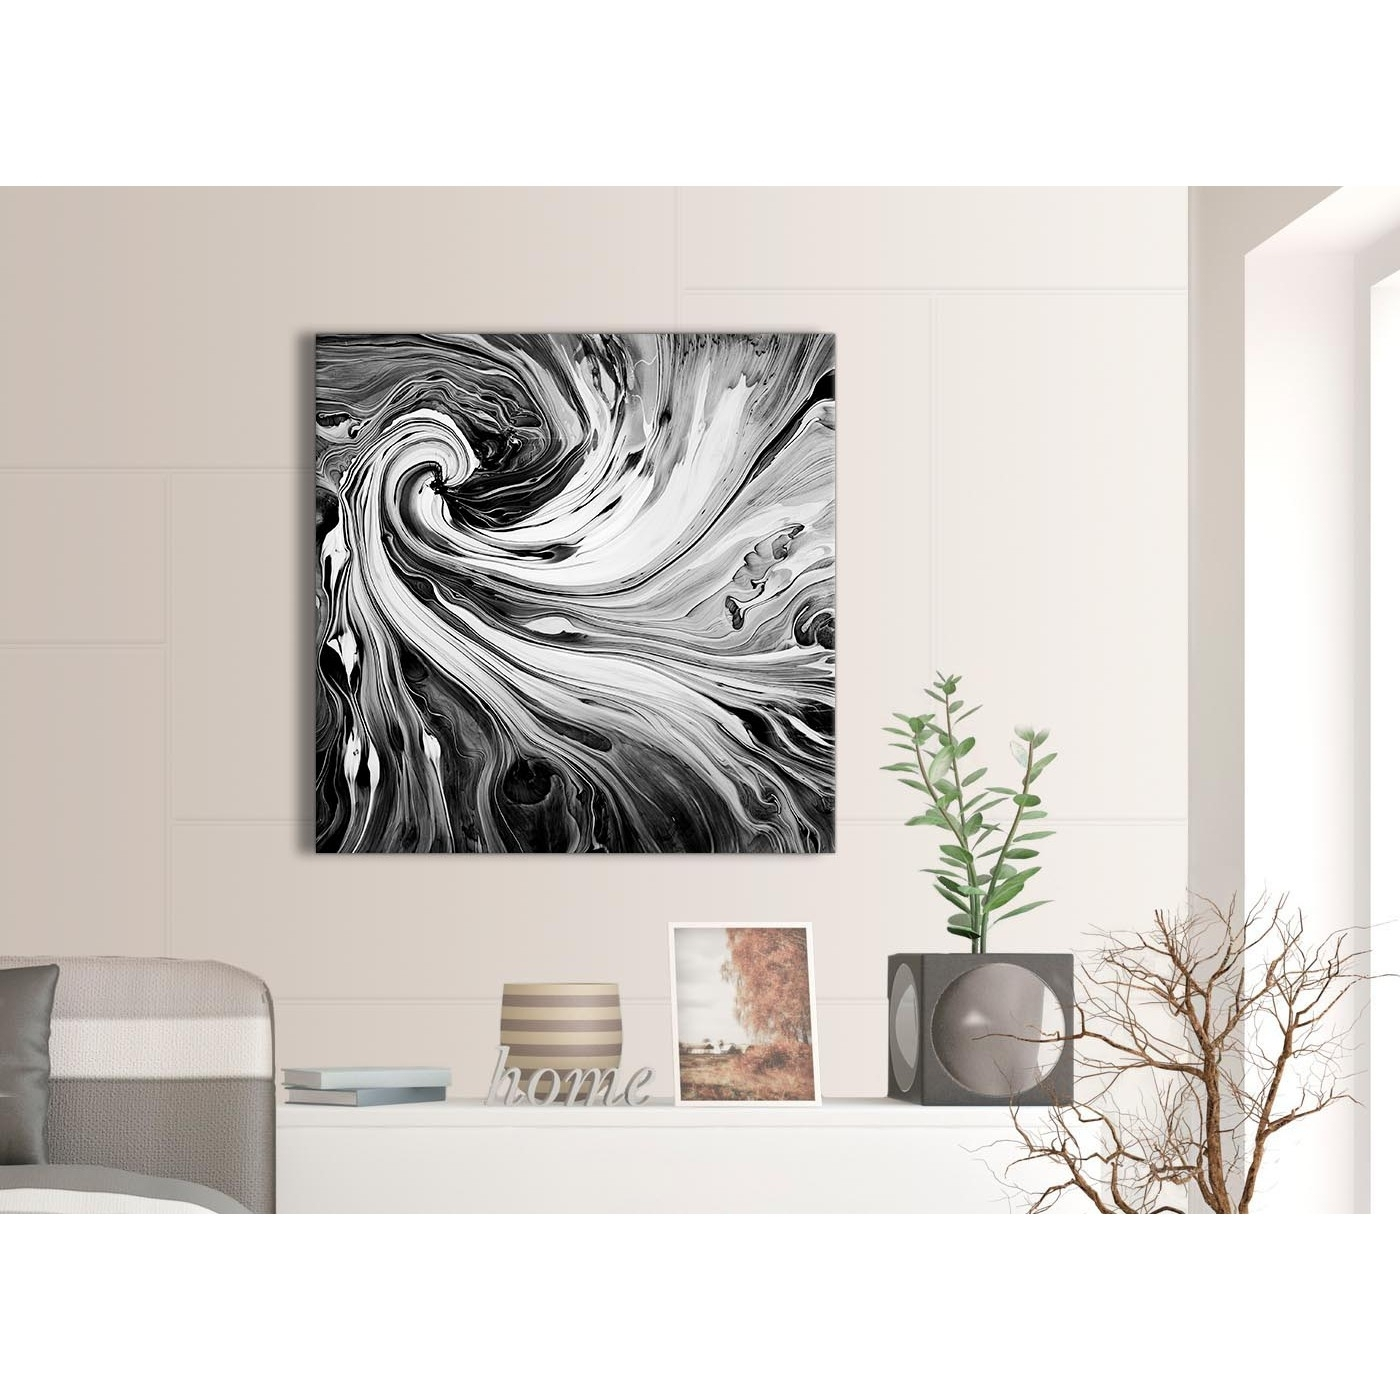 Black White Grey Swirls Modern Abstract Canvas Wall Art – 79cm With Most Up To Date Grey And White Wall Art (View 9 of 20)